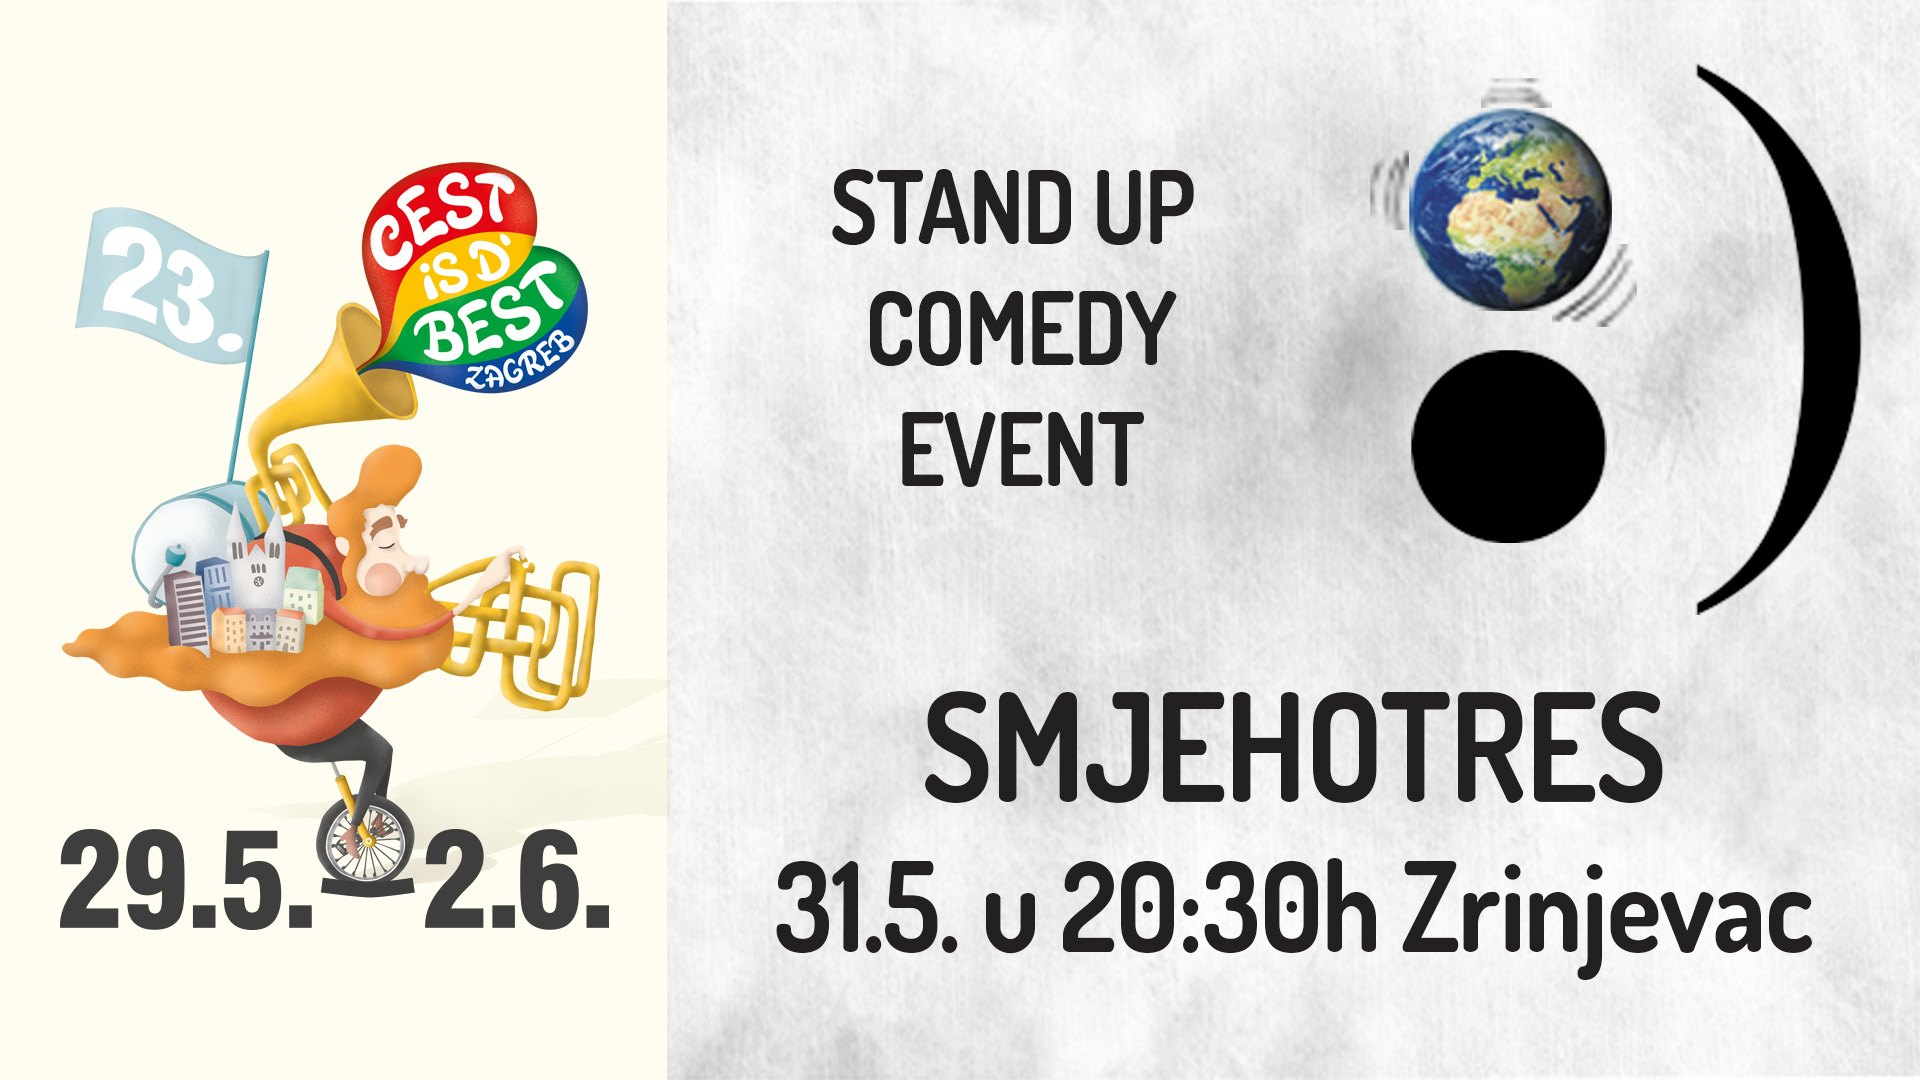 Zagreb Smjehotres besplatan stand up comedy event